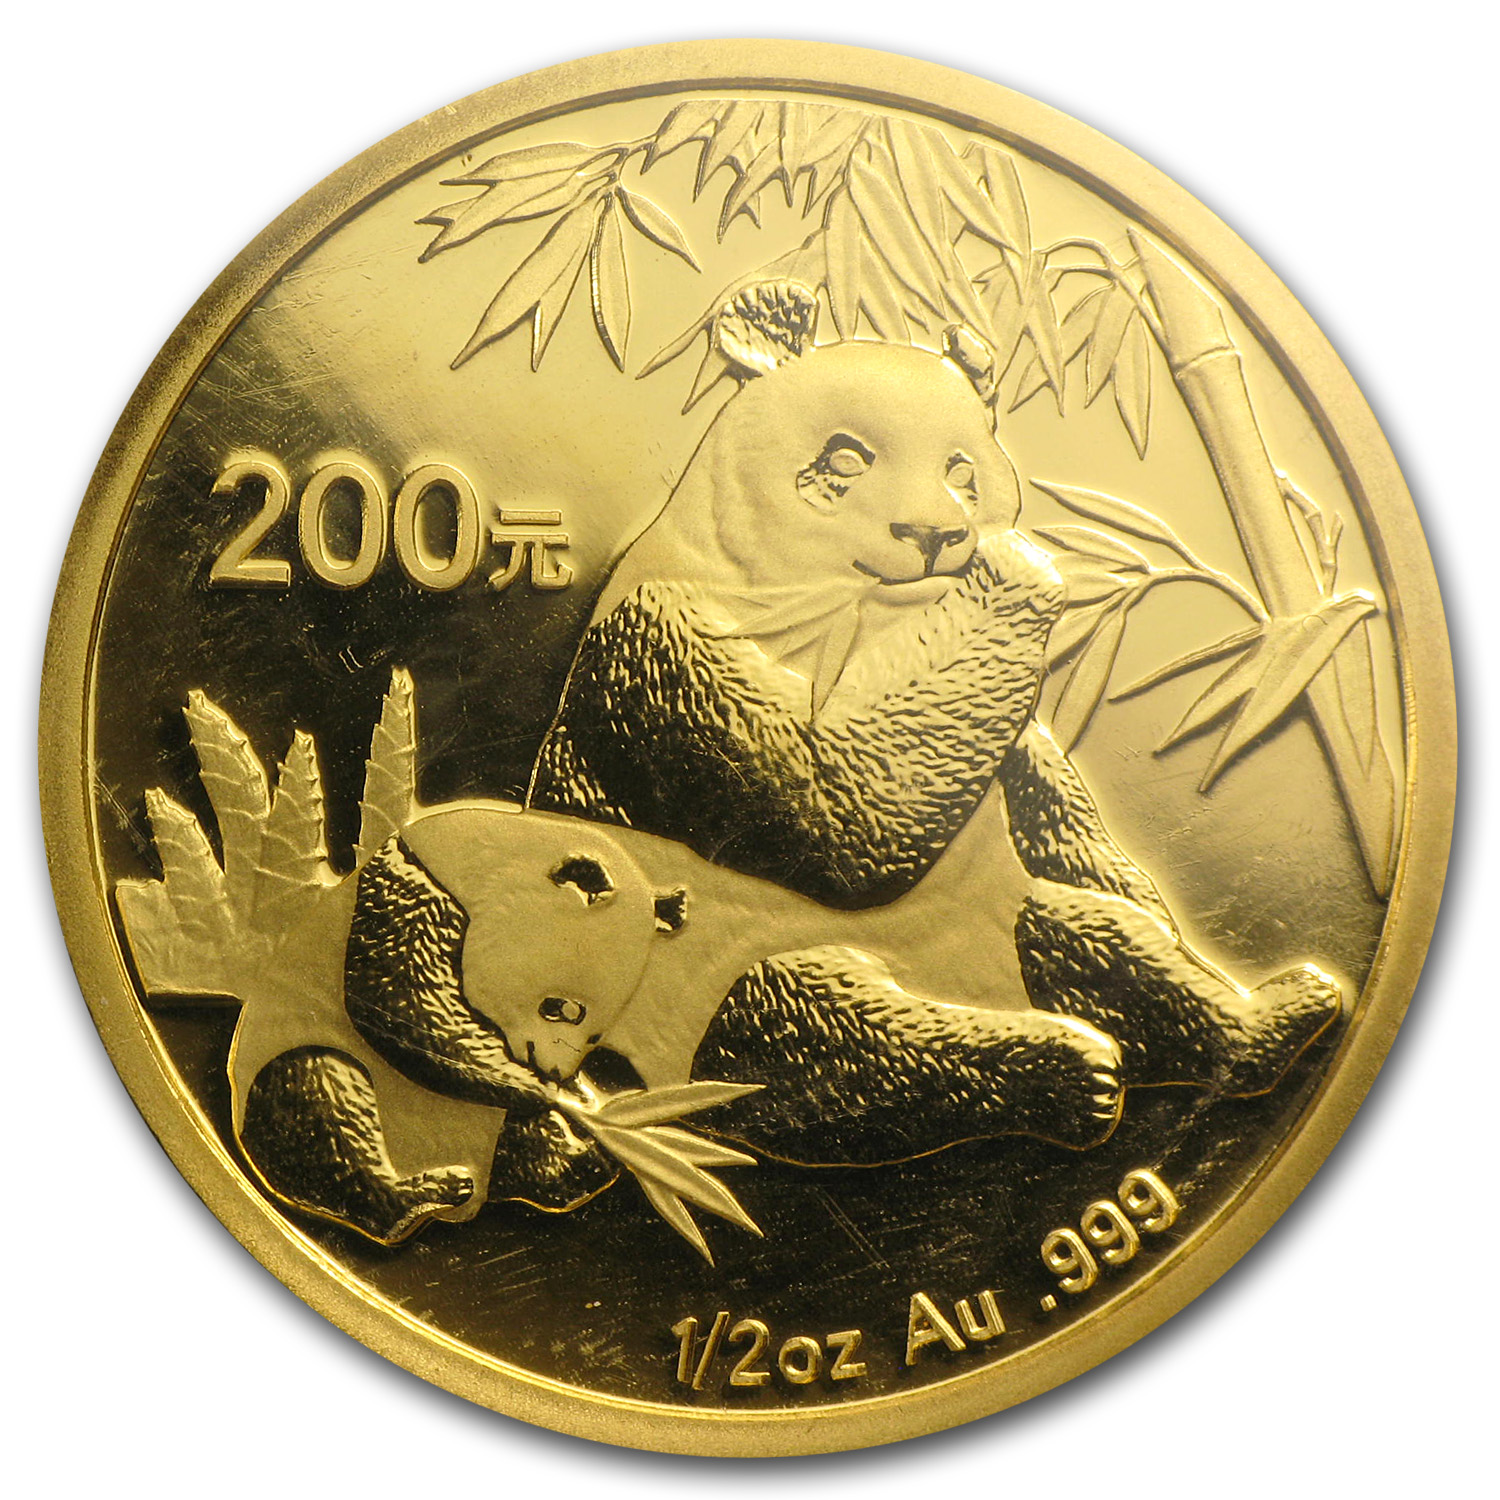 2007 1/2 oz Gold Chinese Panda BU (Sealed)